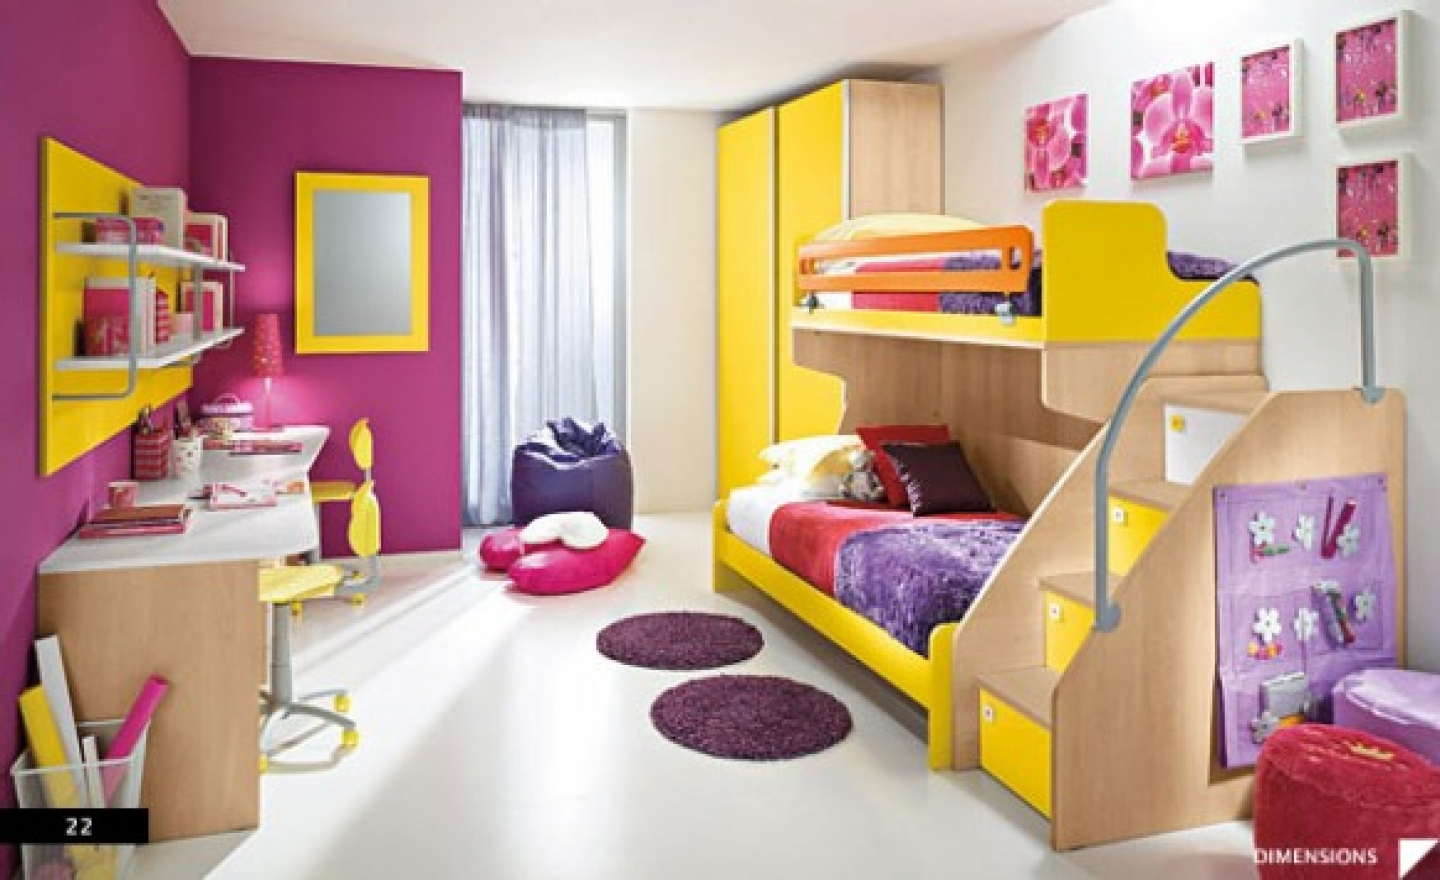 bedroom extraordinary cheerful purple yellow themed girls bedroom interior design with unique bunk bed and pretty purple small round rugs delightful decorating ideas for sweet girls bedroom interior Bedroom Ideas For Girls